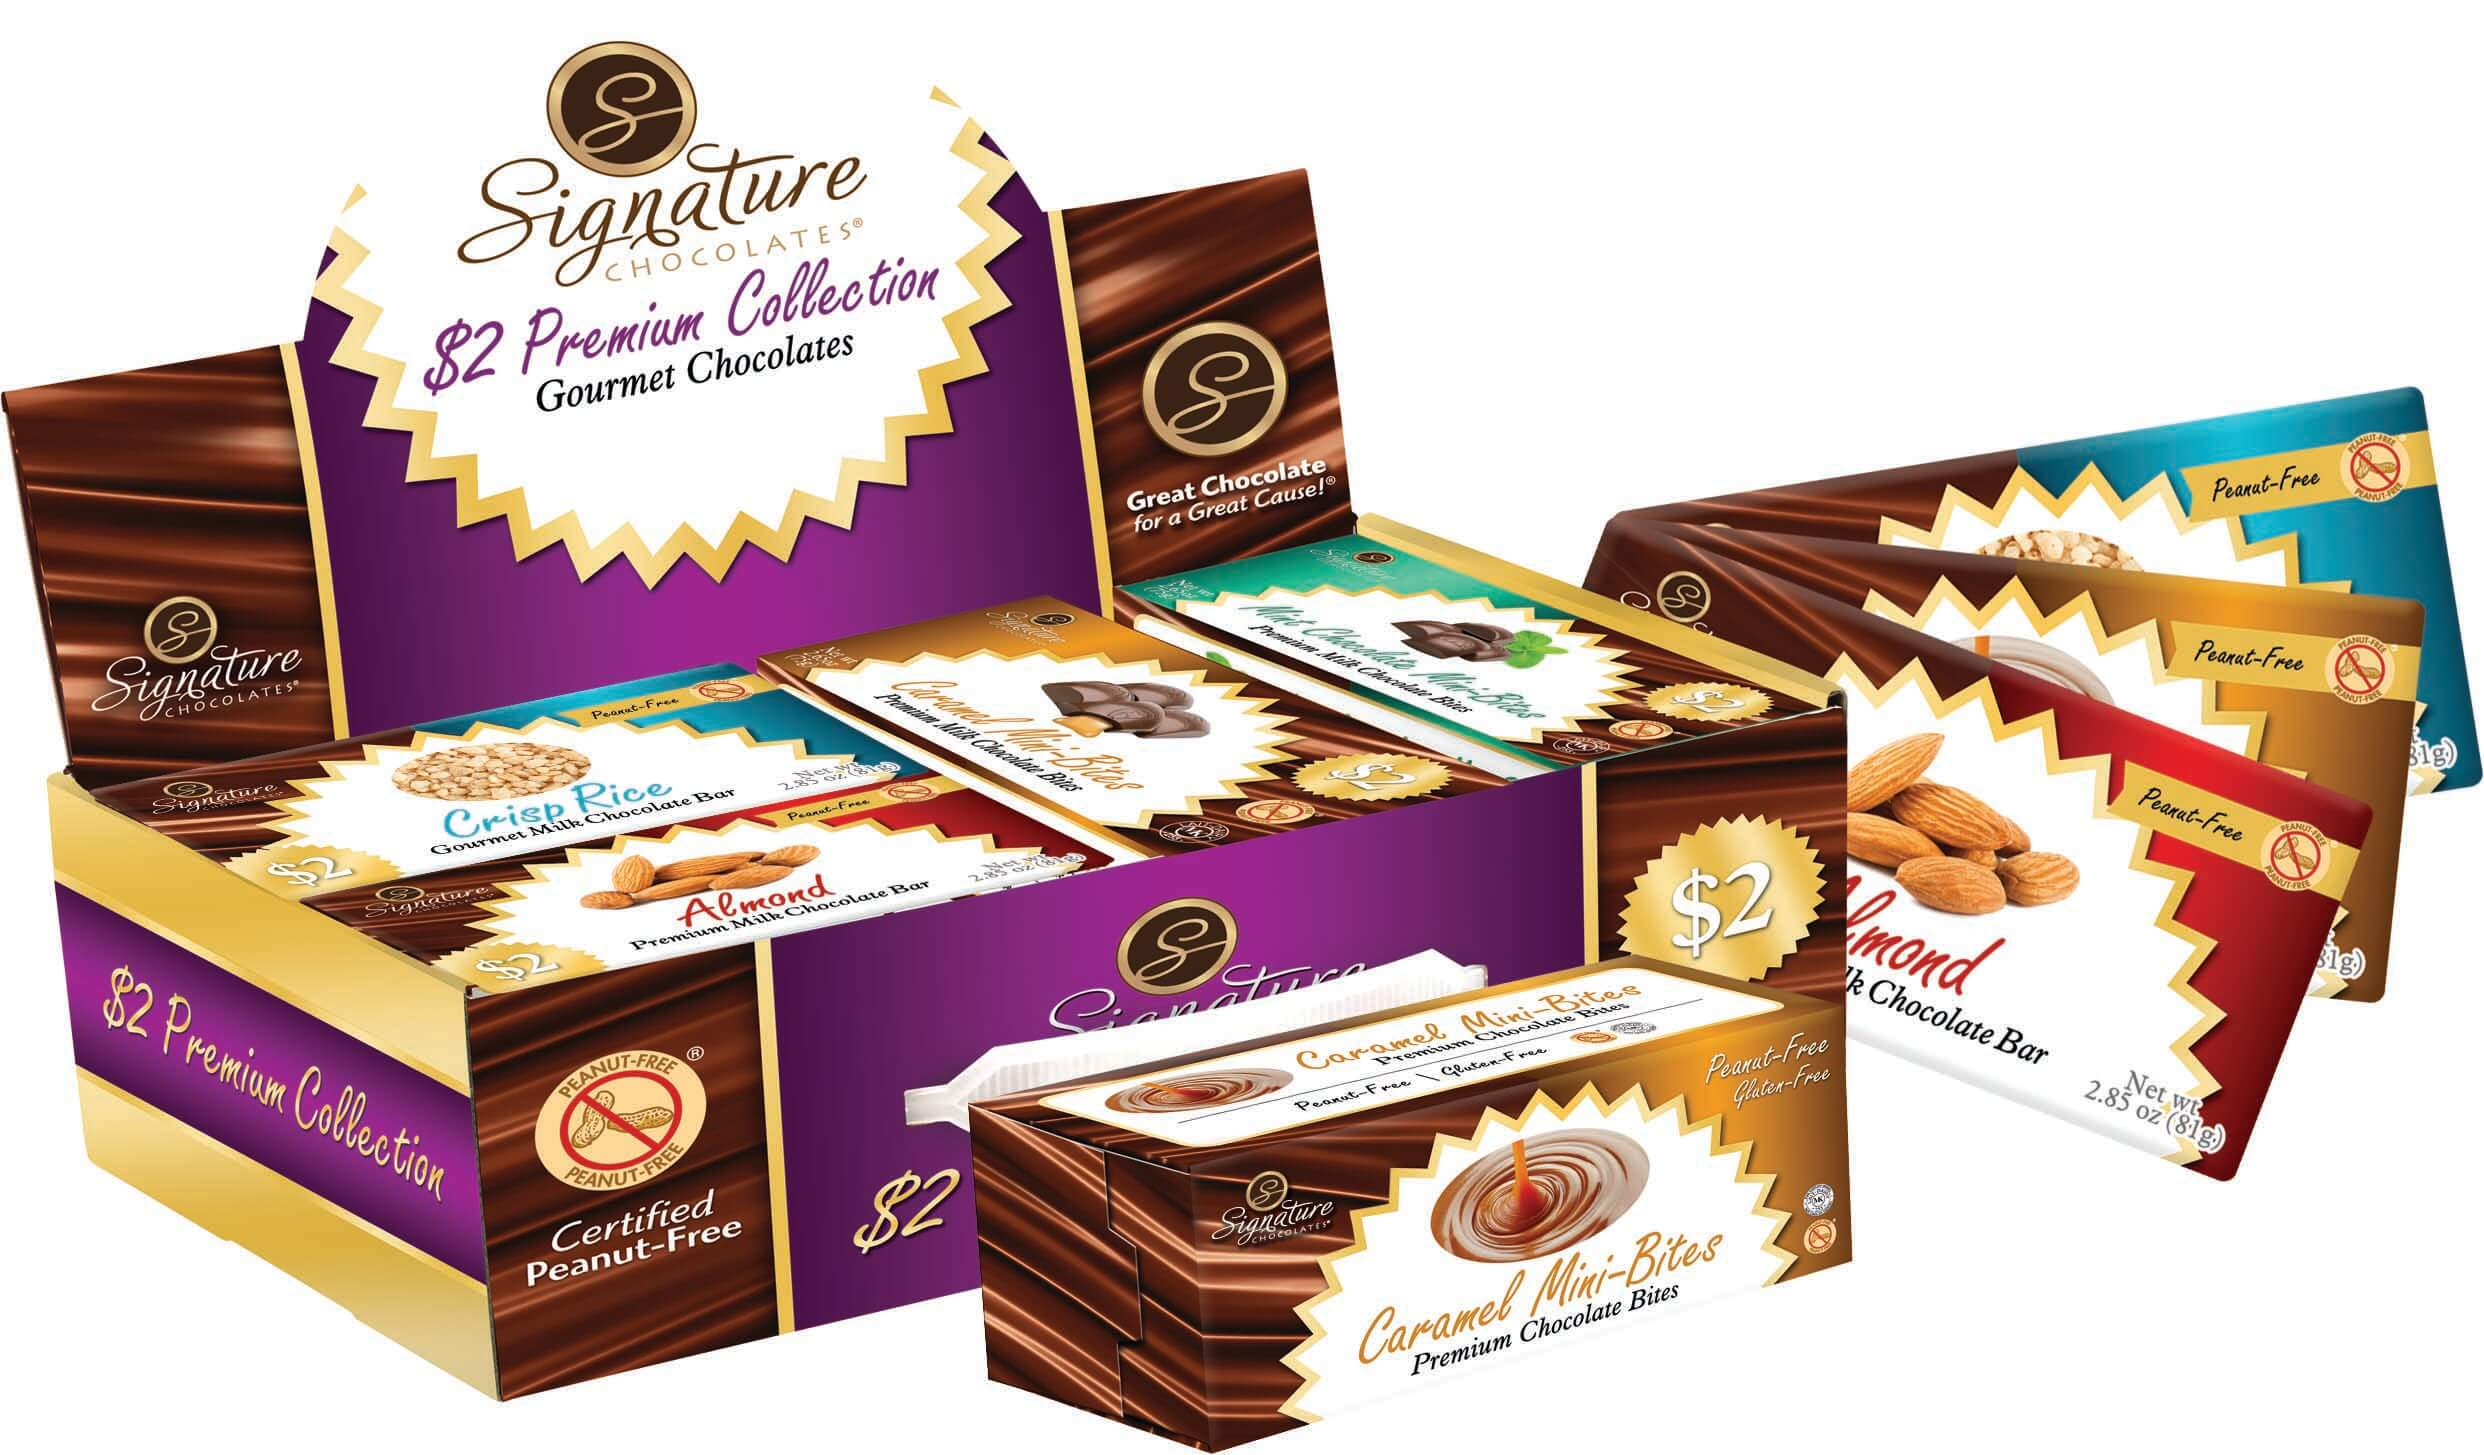 Signature Premium Collection Carrier Bars and Boxes (1)